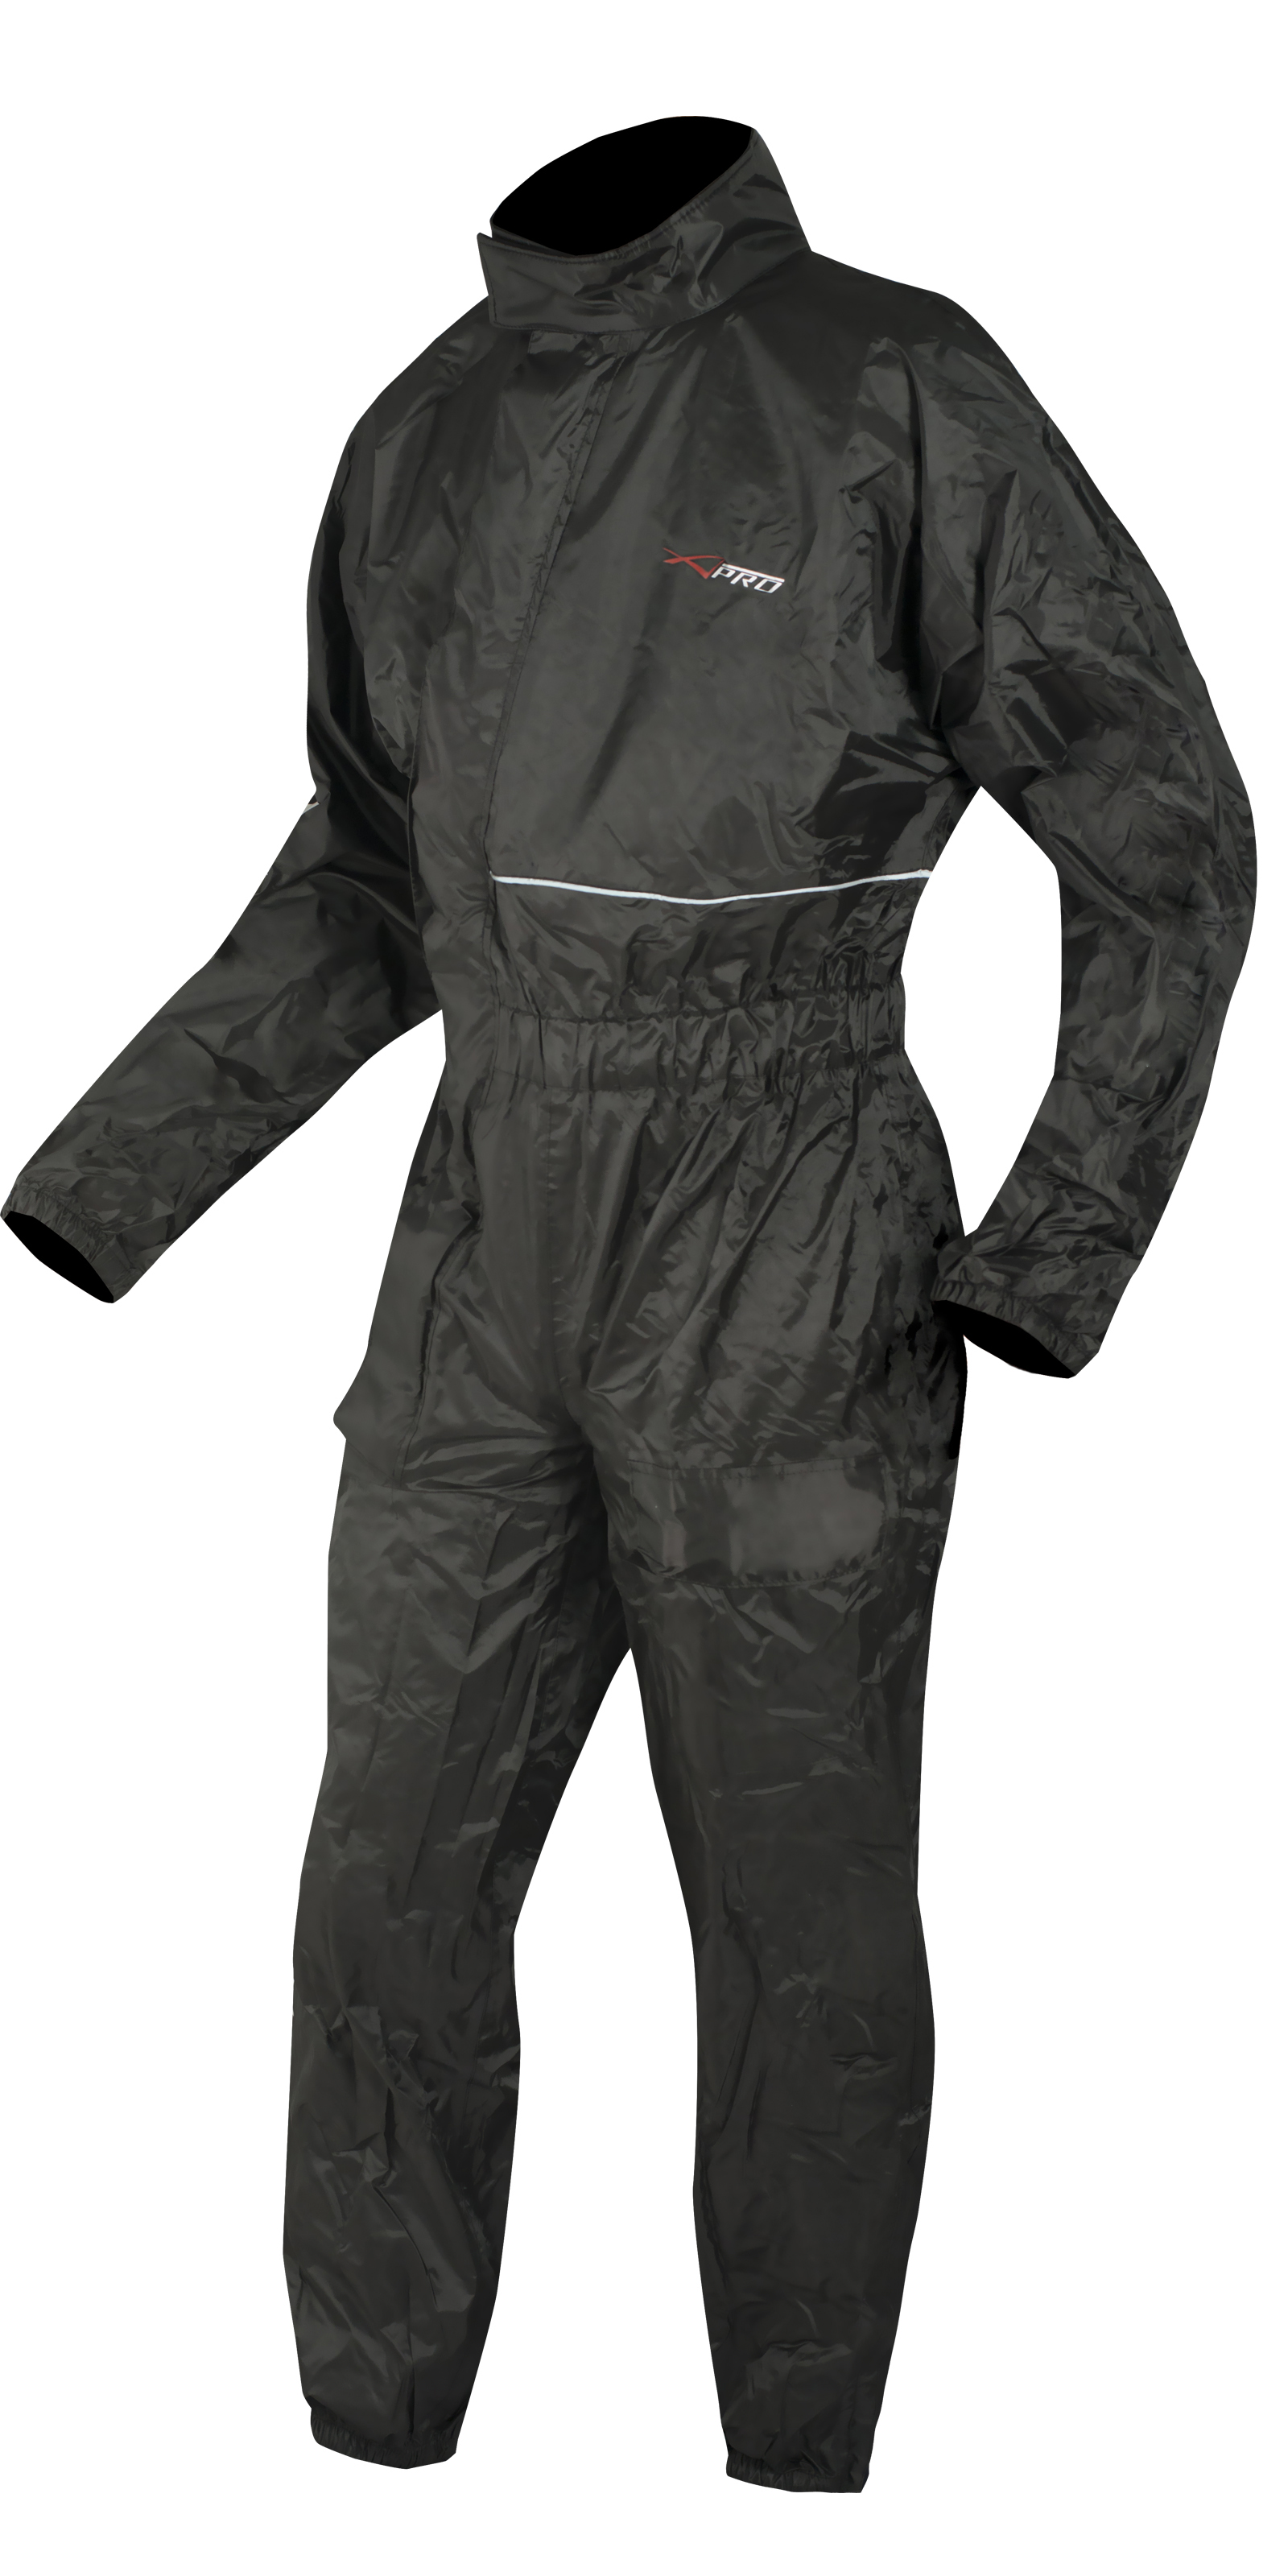 Entire-jumpsuit-Anti-Rain-Water-impermeablie-Foldable-Pouch-Motorcycle-Scooter thumbnail 5